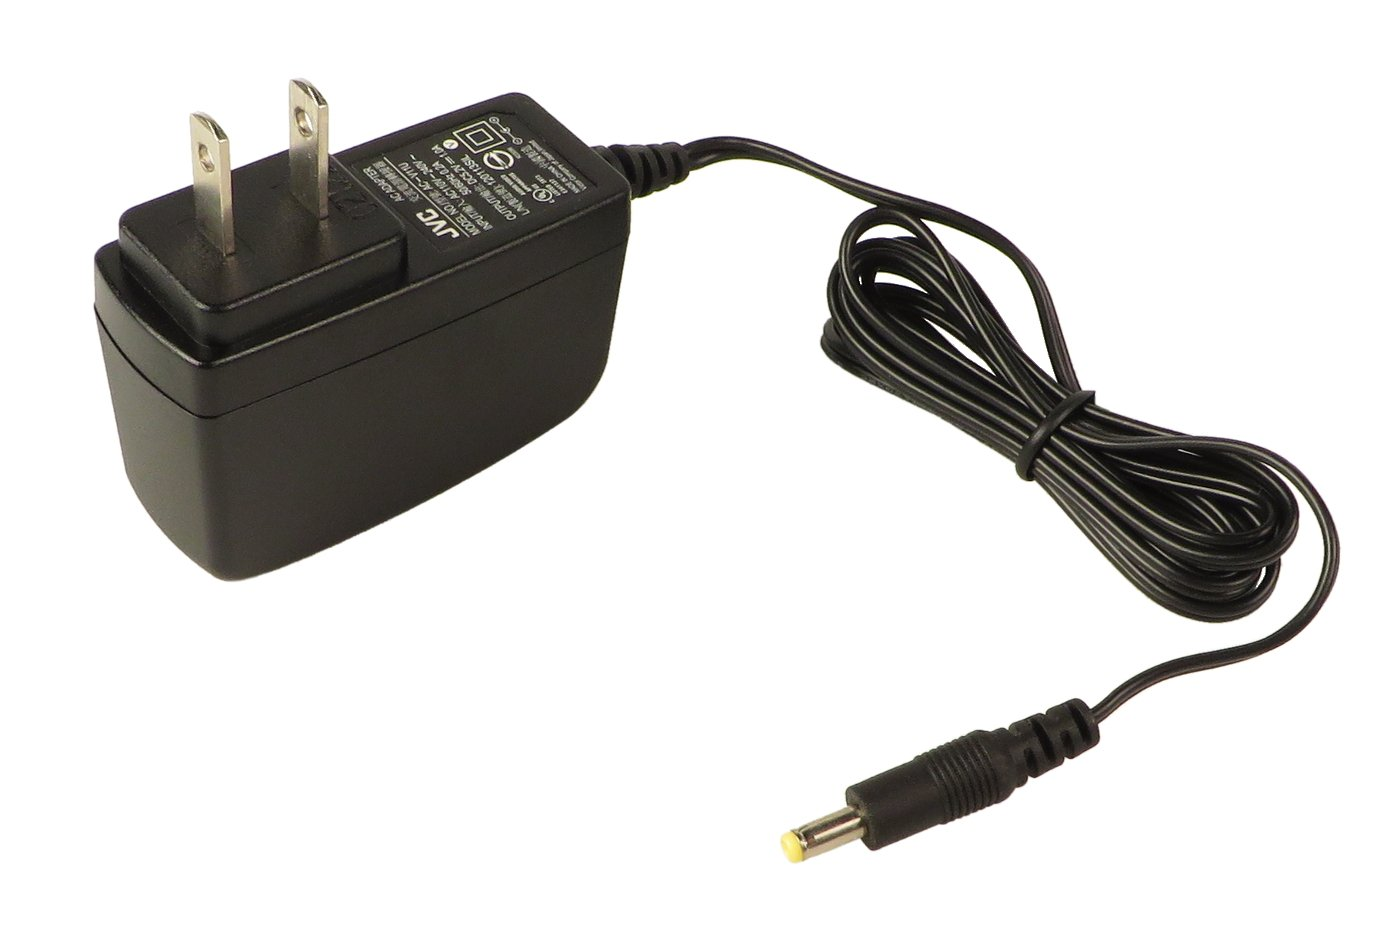 AC Adaptor for GZHM30BU and GZE10BUS